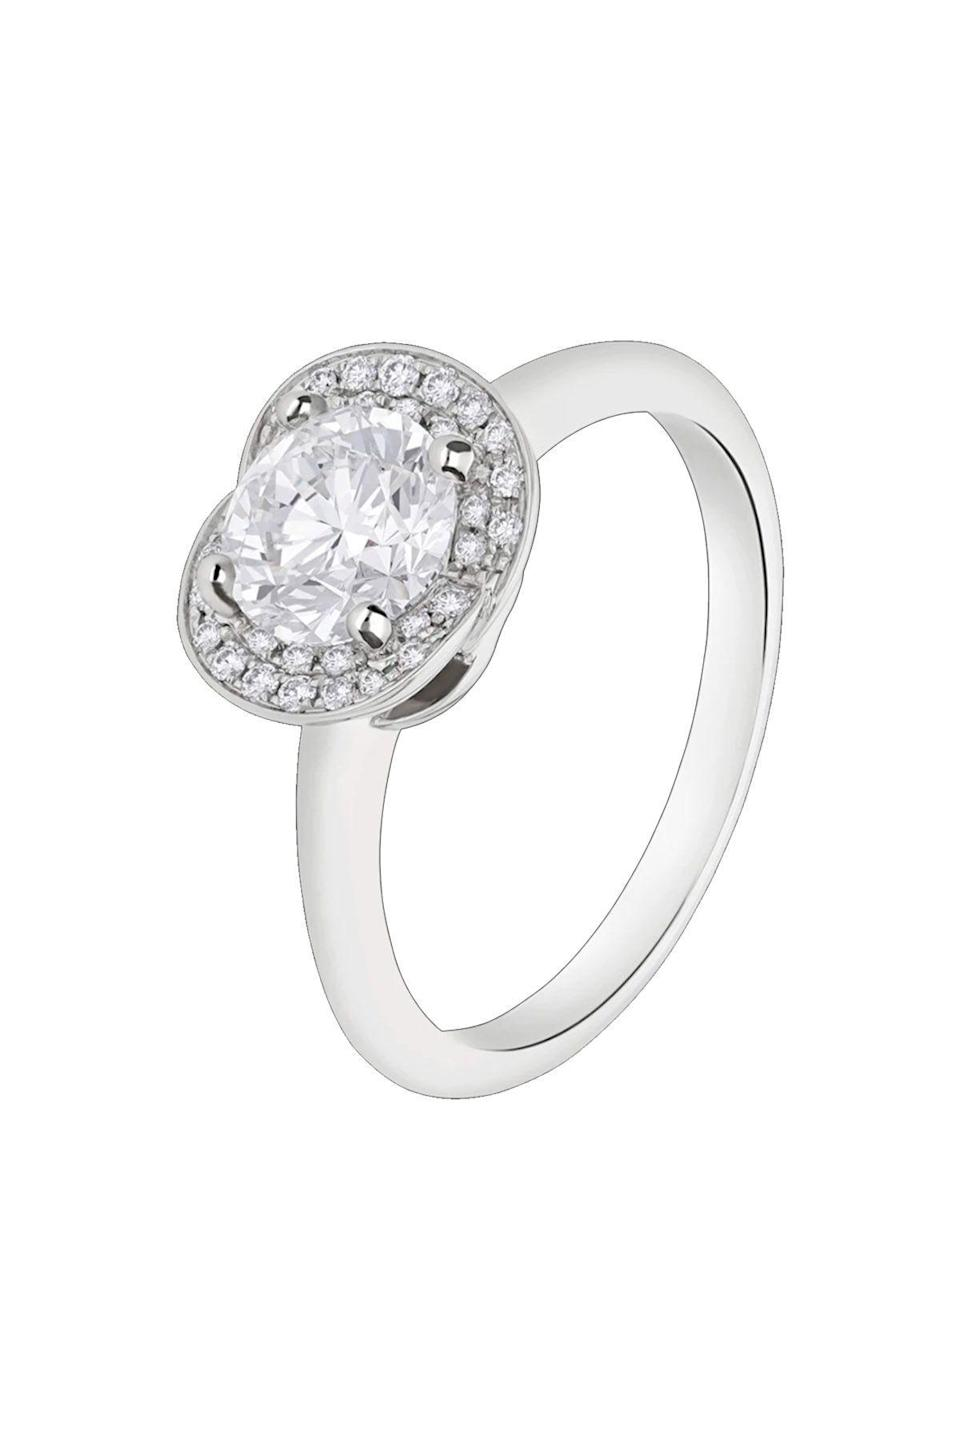 """<p><strong>Bvlgari</strong></p><p>bulgari.com</p><p><a href=""""https://www.bulgari.com/en-us/355409.html"""" rel=""""nofollow noopener"""" target=""""_blank"""" data-ylk=""""slk:Shop Now"""" class=""""link rapid-noclick-resp"""">Shop Now</a></p><p>Inspired by flowers, Bulgari surrounds its round brilliant-cut diamond with with a slightly raised halo.</p>"""